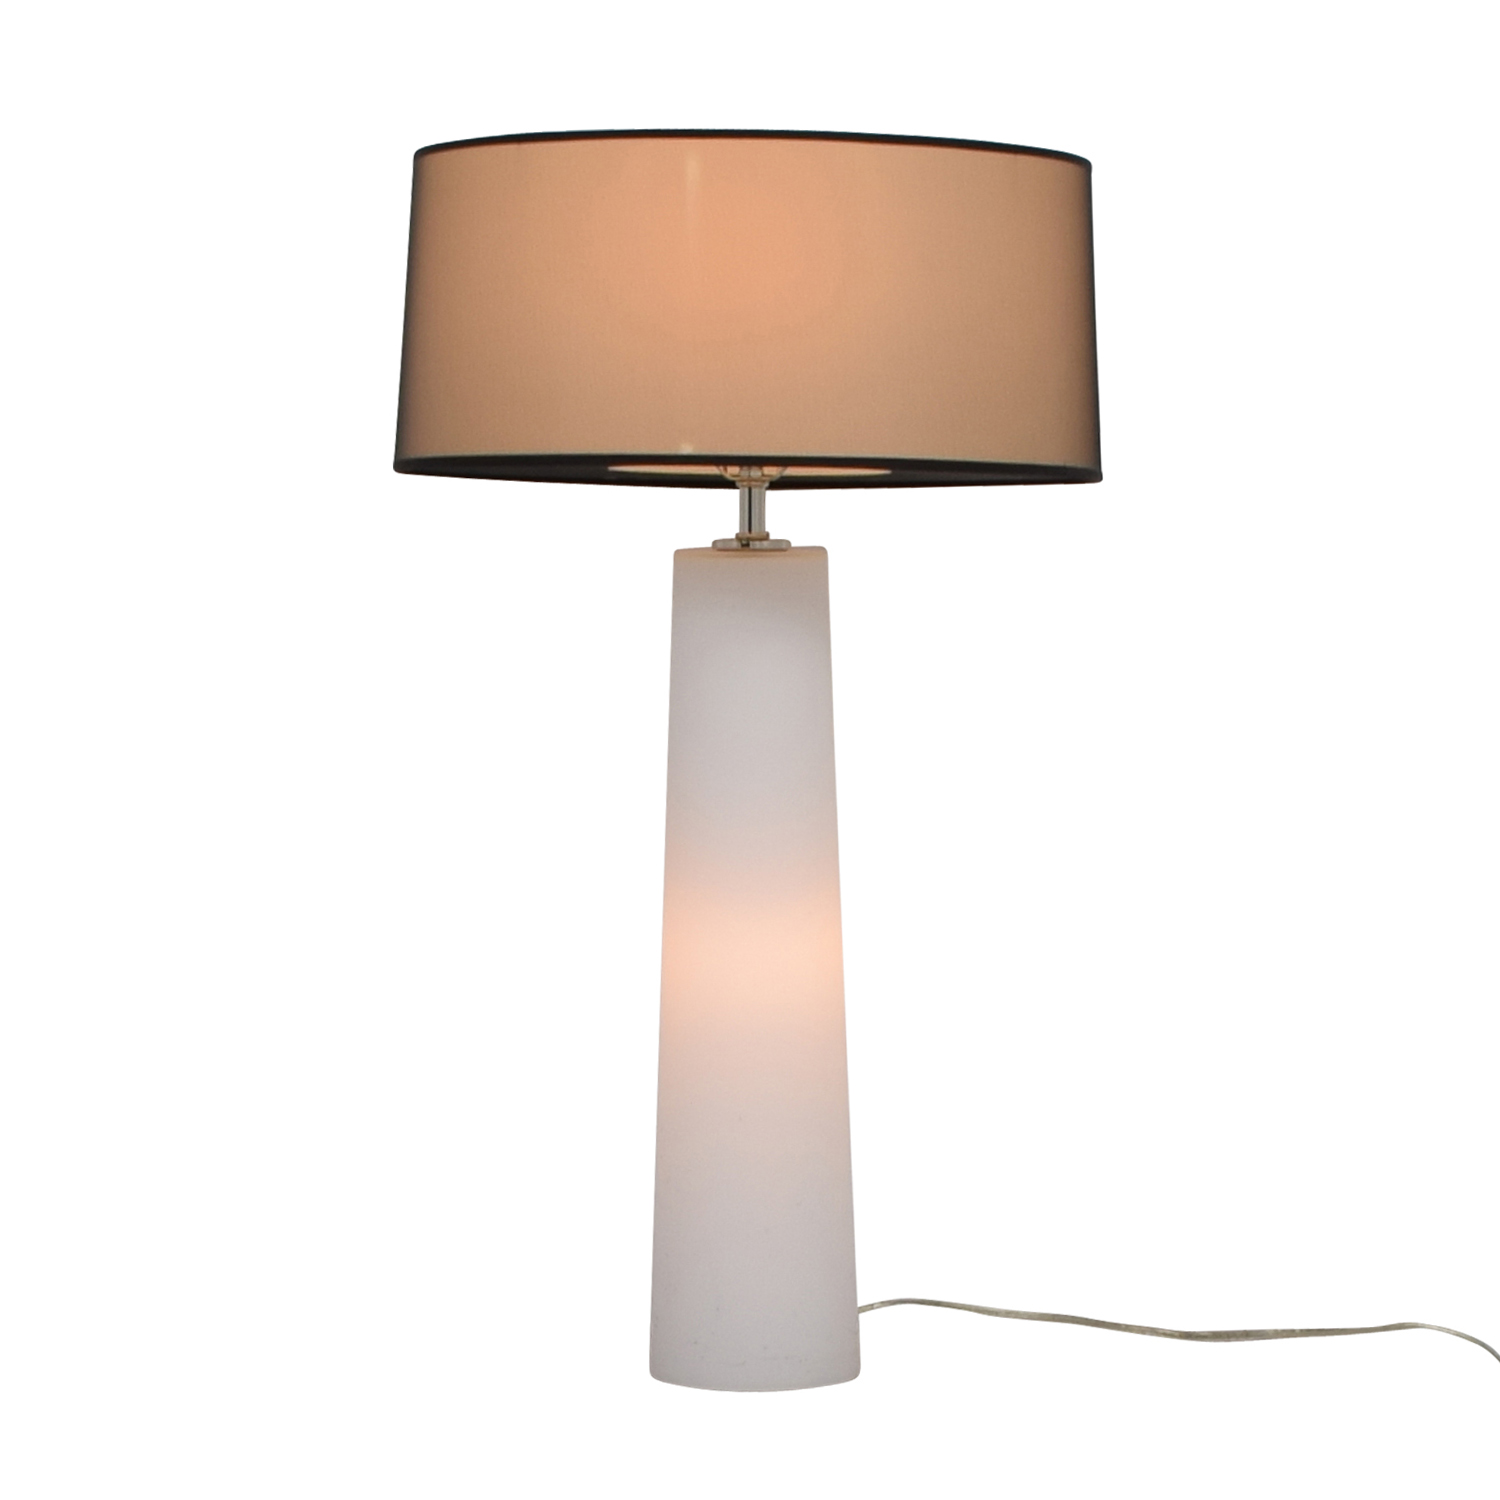 White Bedside Lamp With Base and Top Lighting price